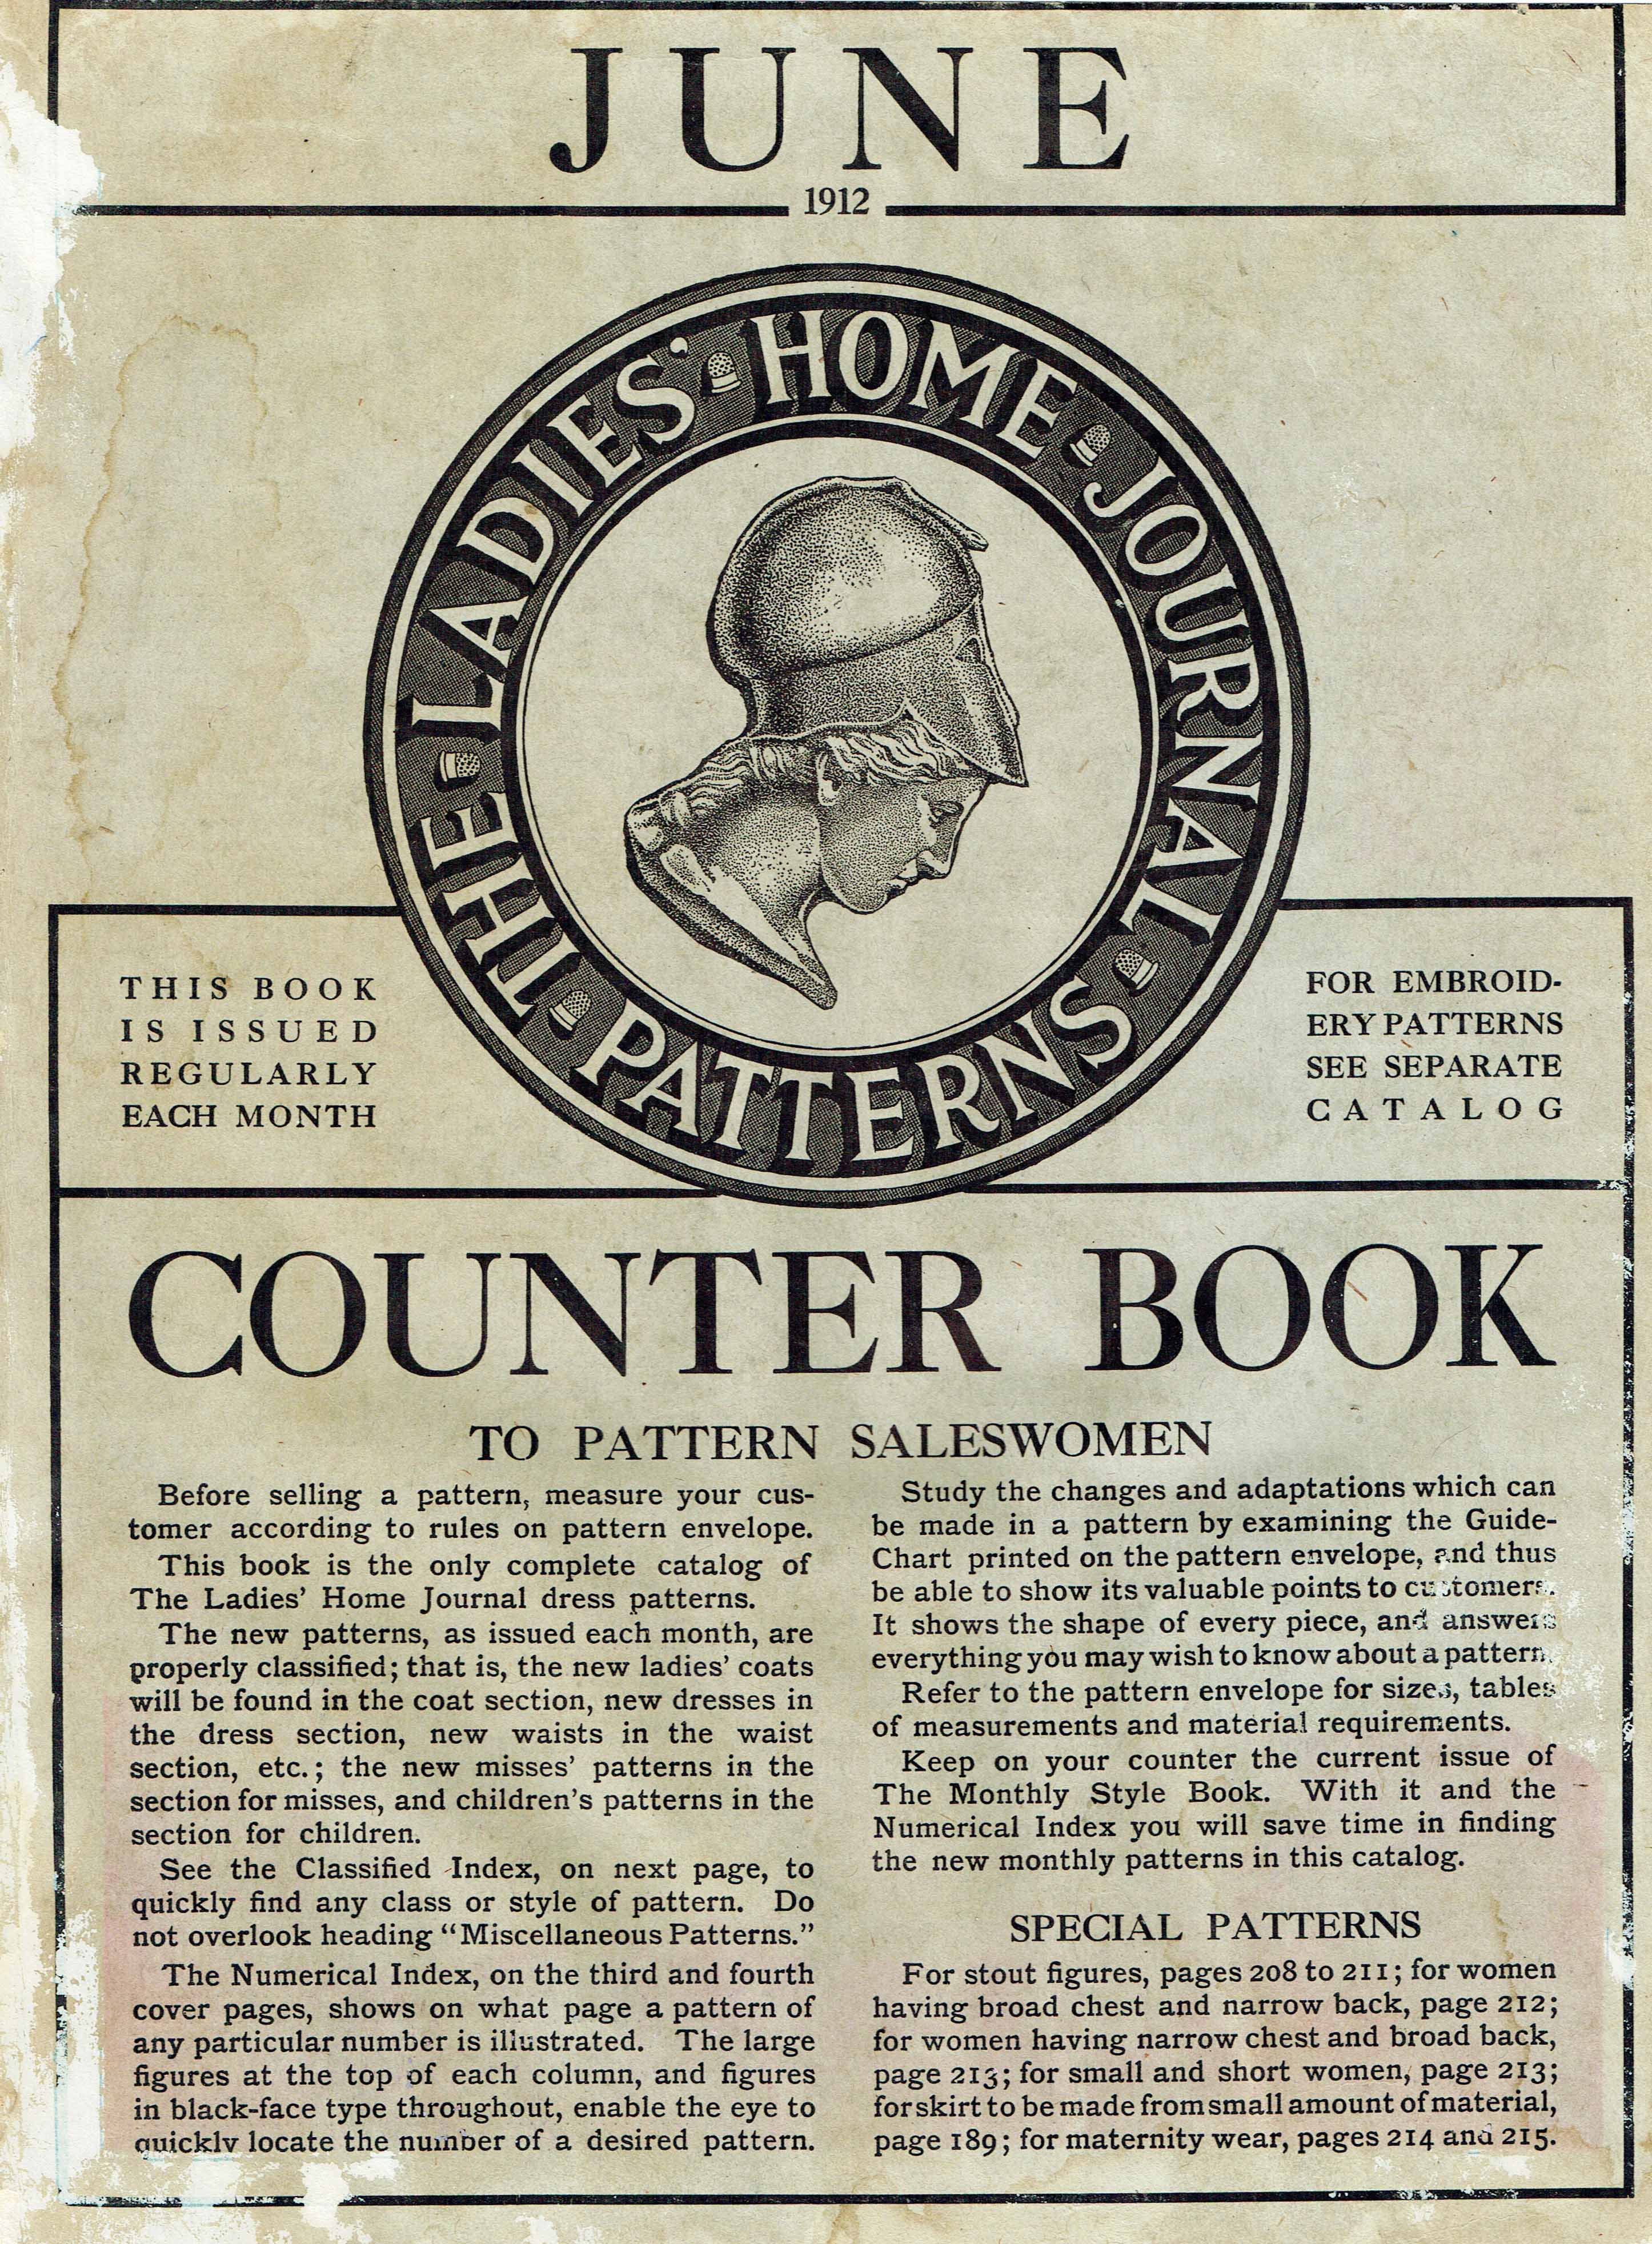 Ladies Home Journal Patterns Counter Book June 1912